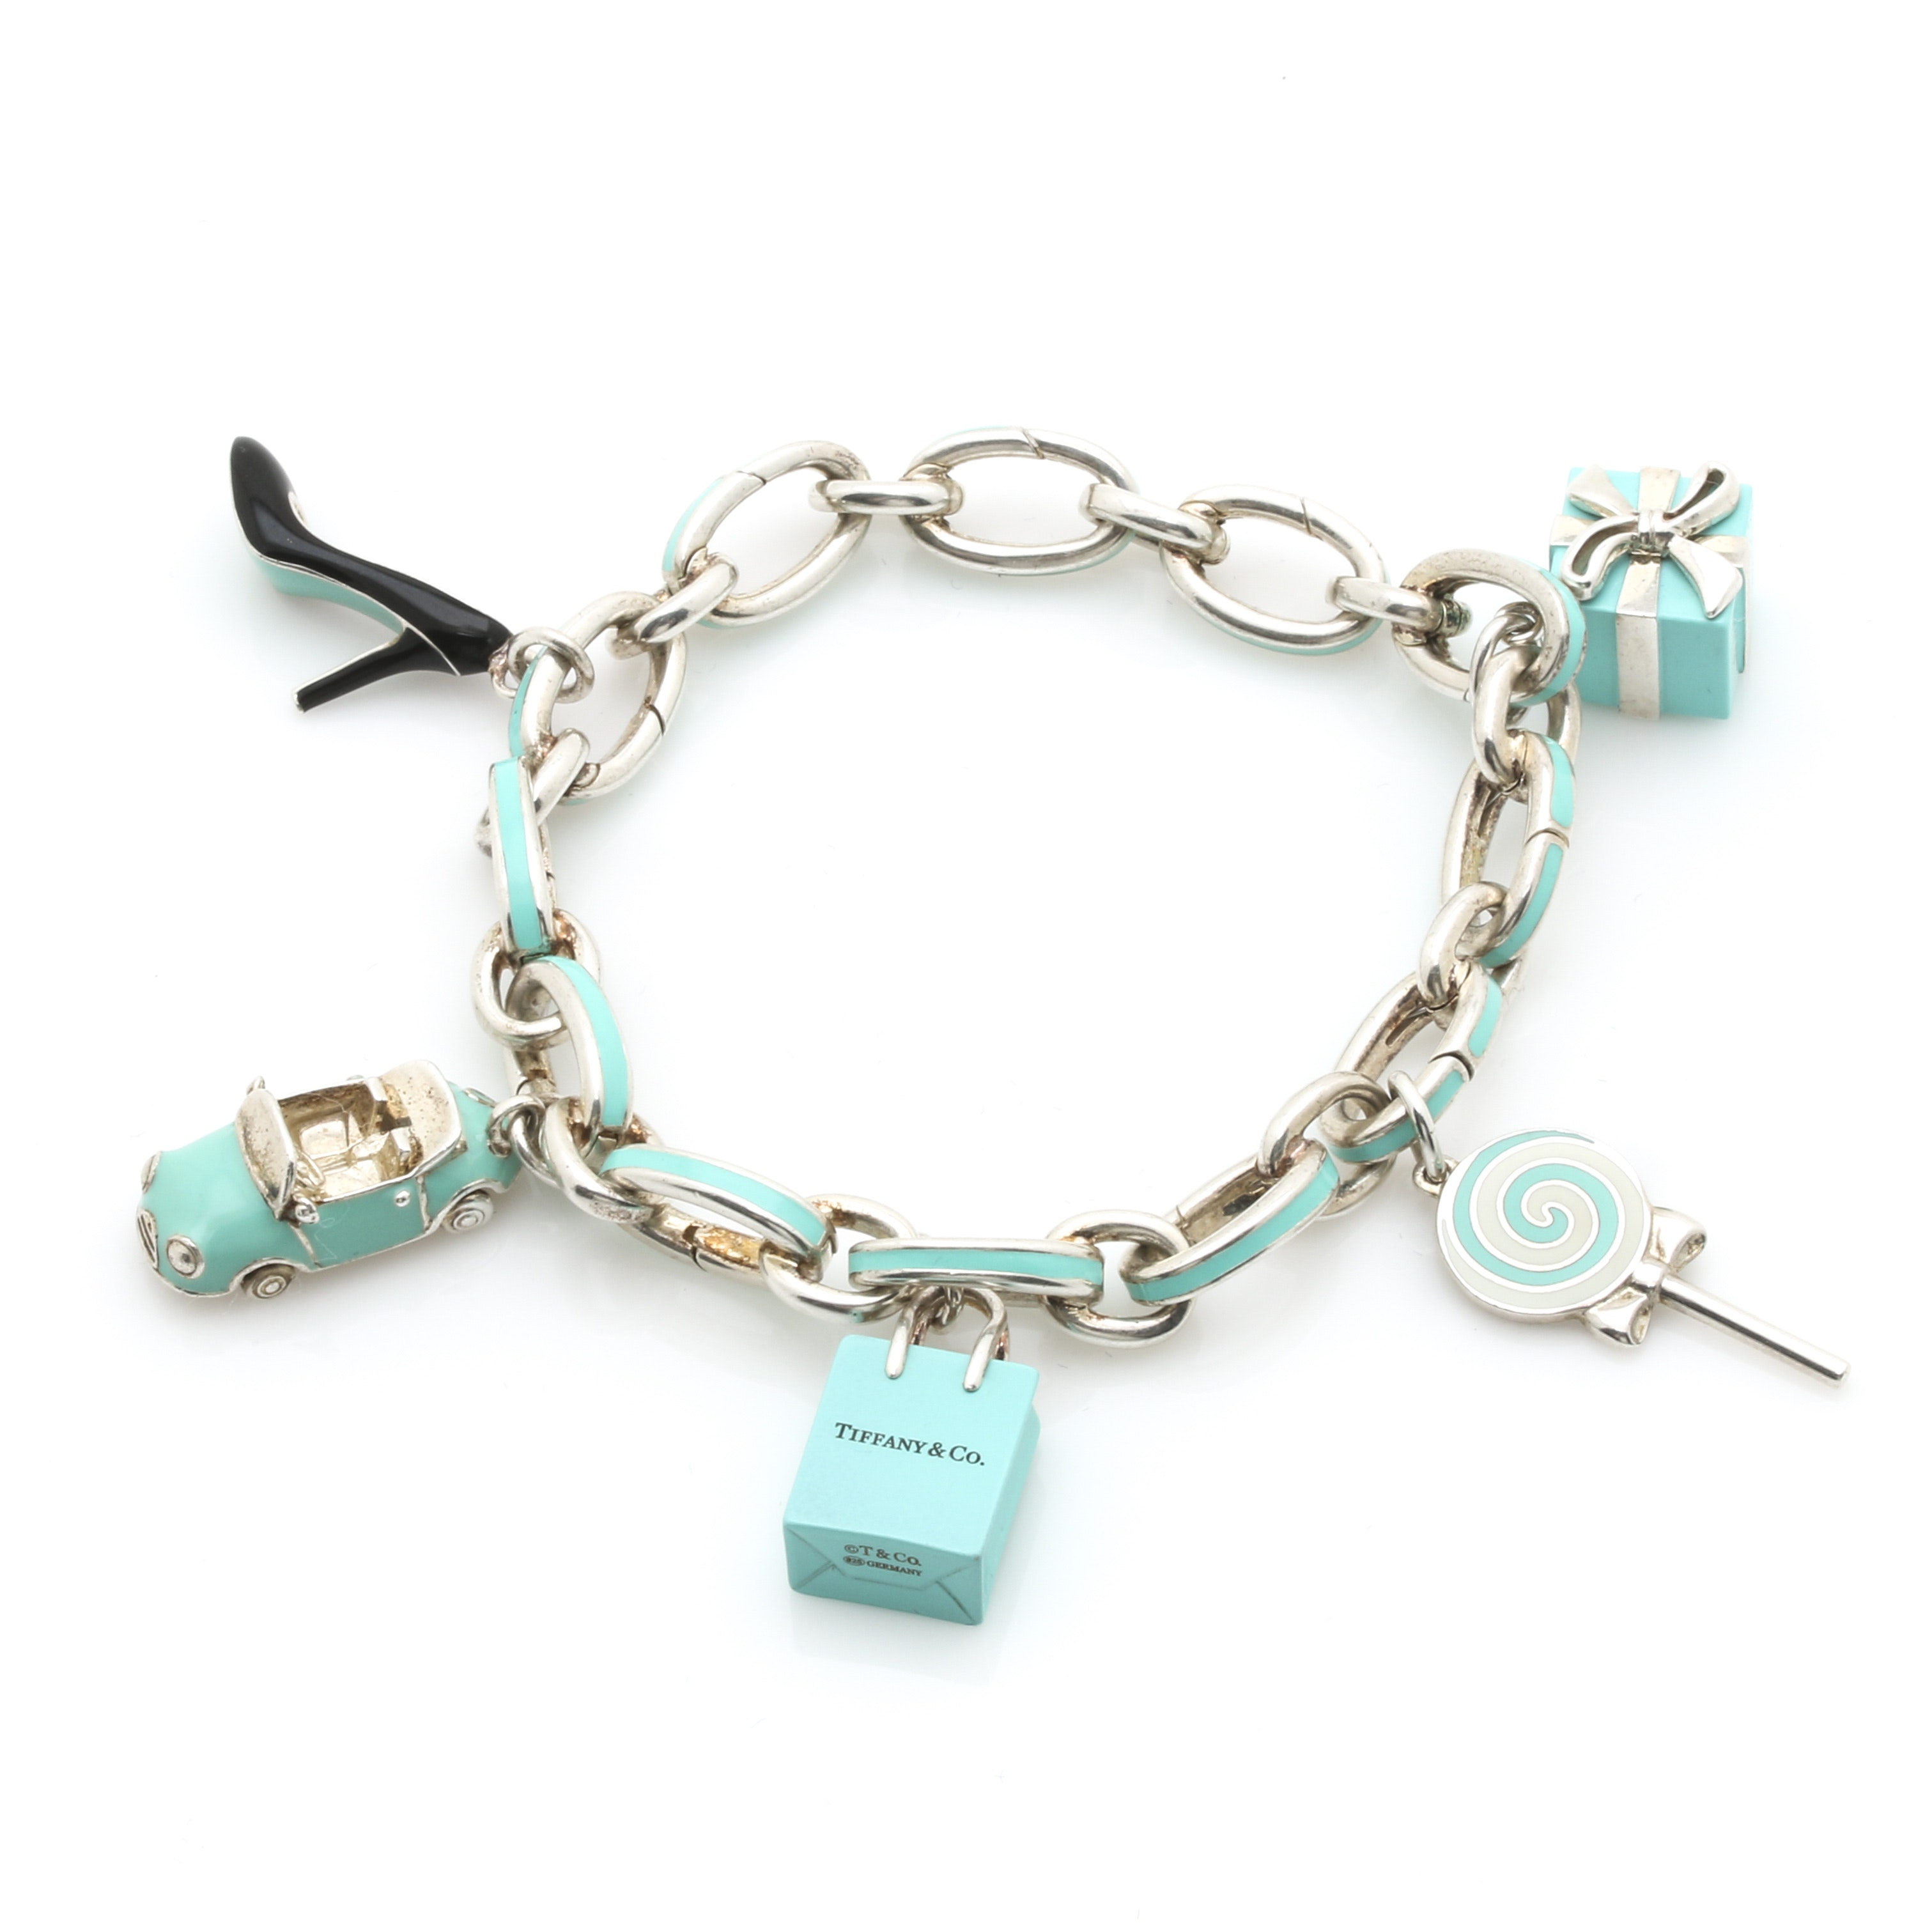 Tiffany & Co. Sterling Silver Charm Bracelet With Various T & Co. Charms